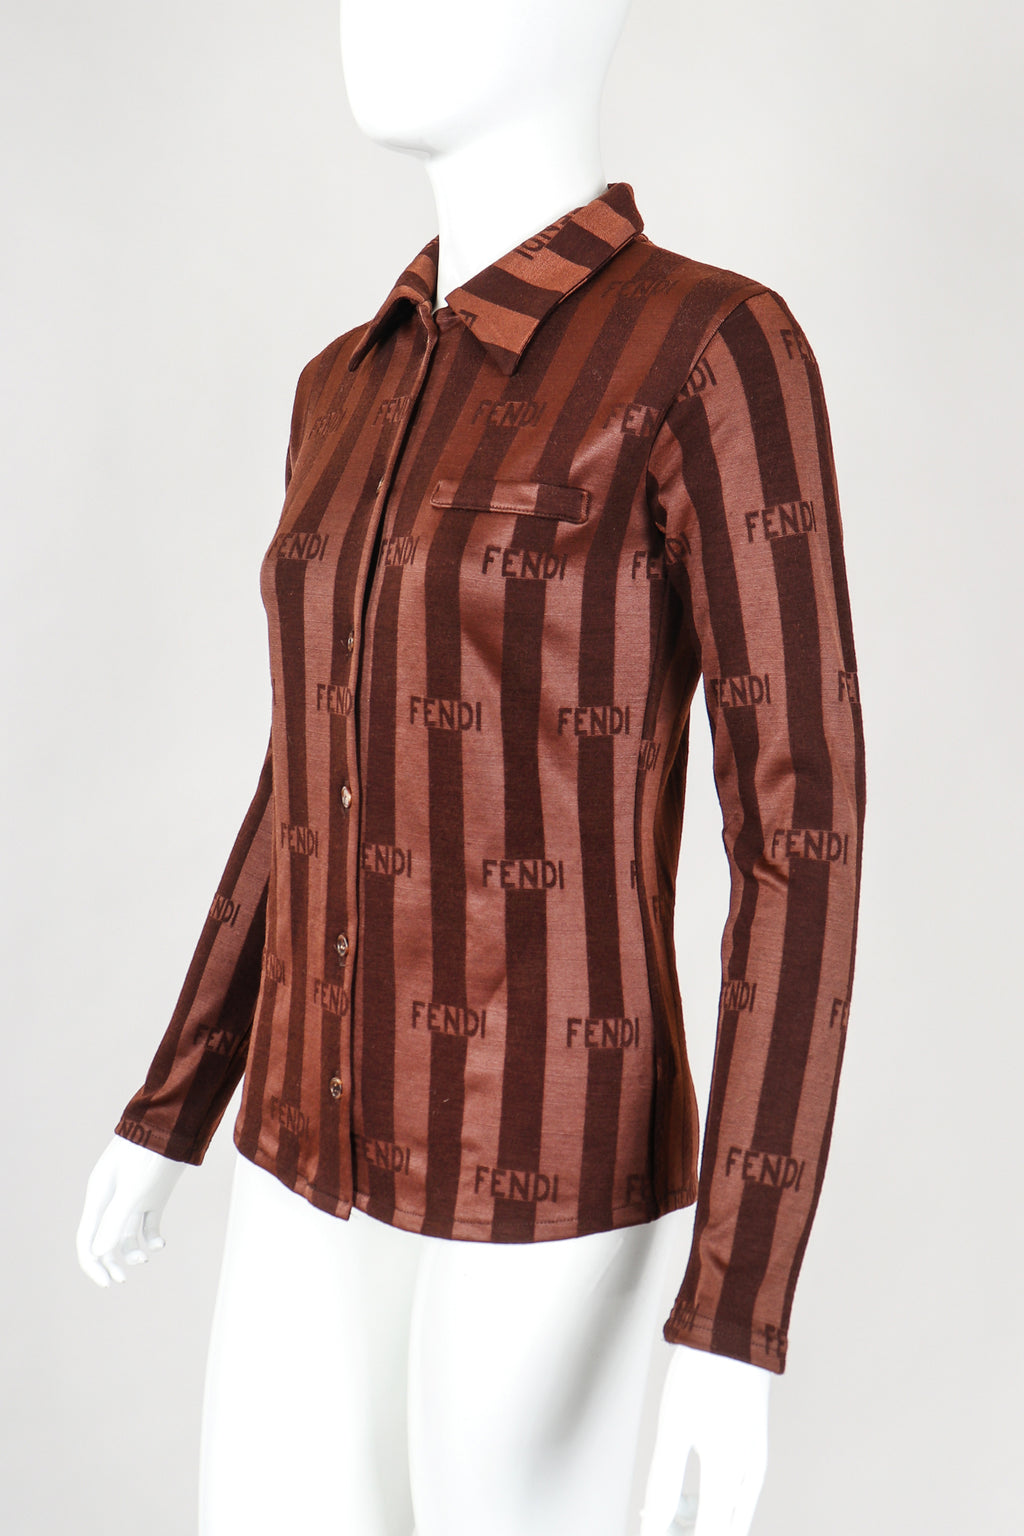 Recess Vintage Fendi Brown Striped Knit Collared Shirt on Mannequin, side angle